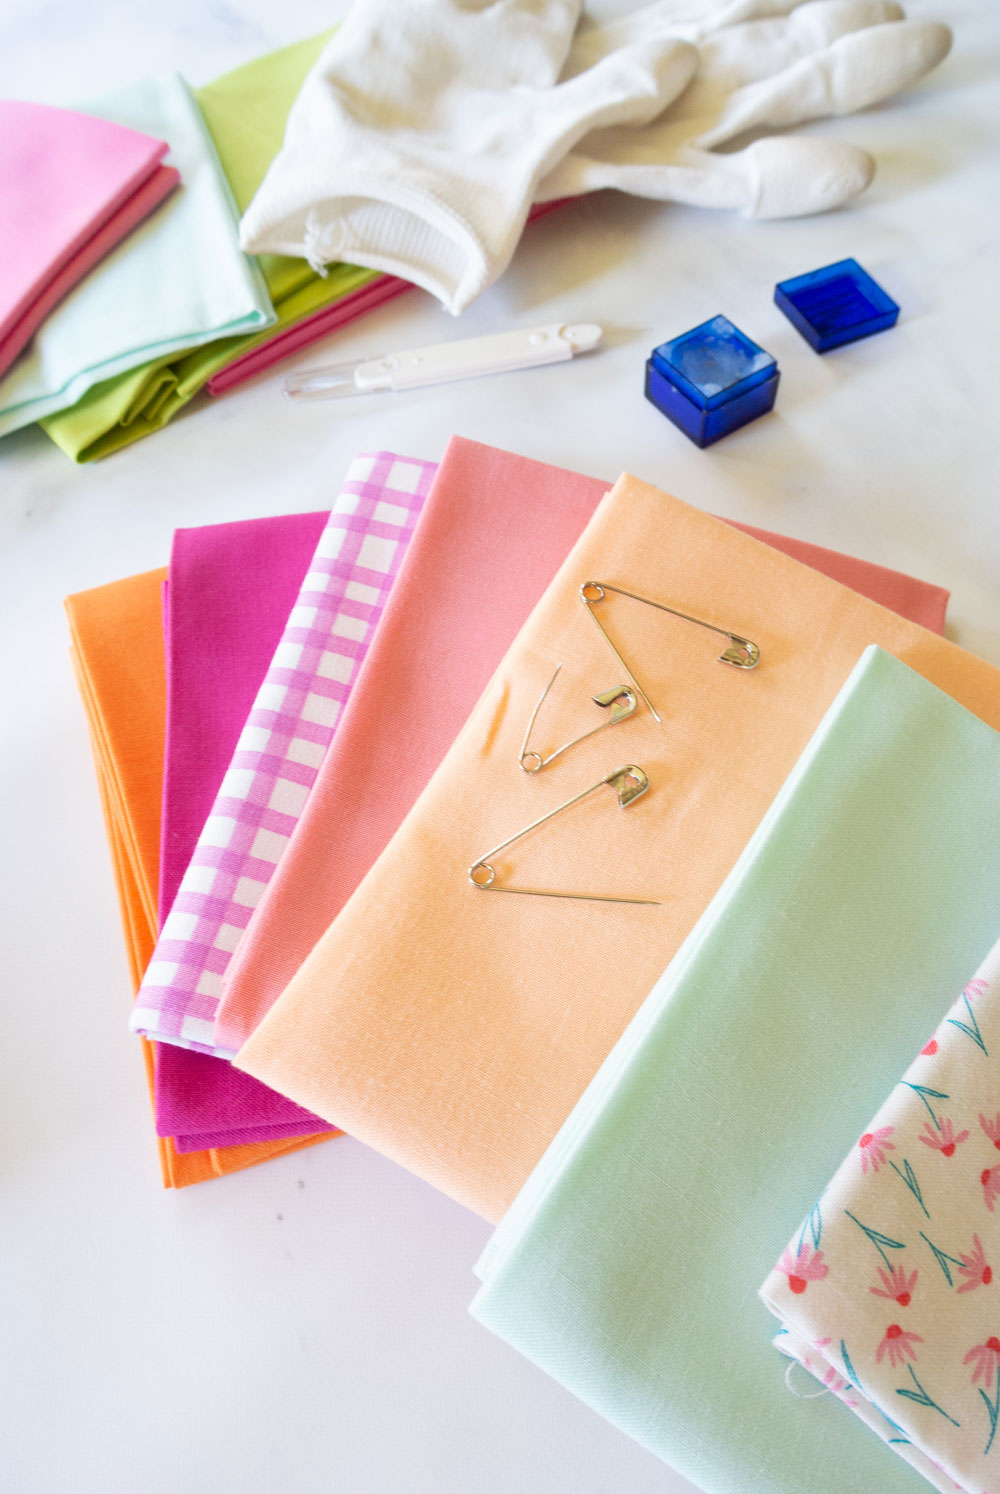 The 5 best underrated quilting notions that should be in every sewing room.